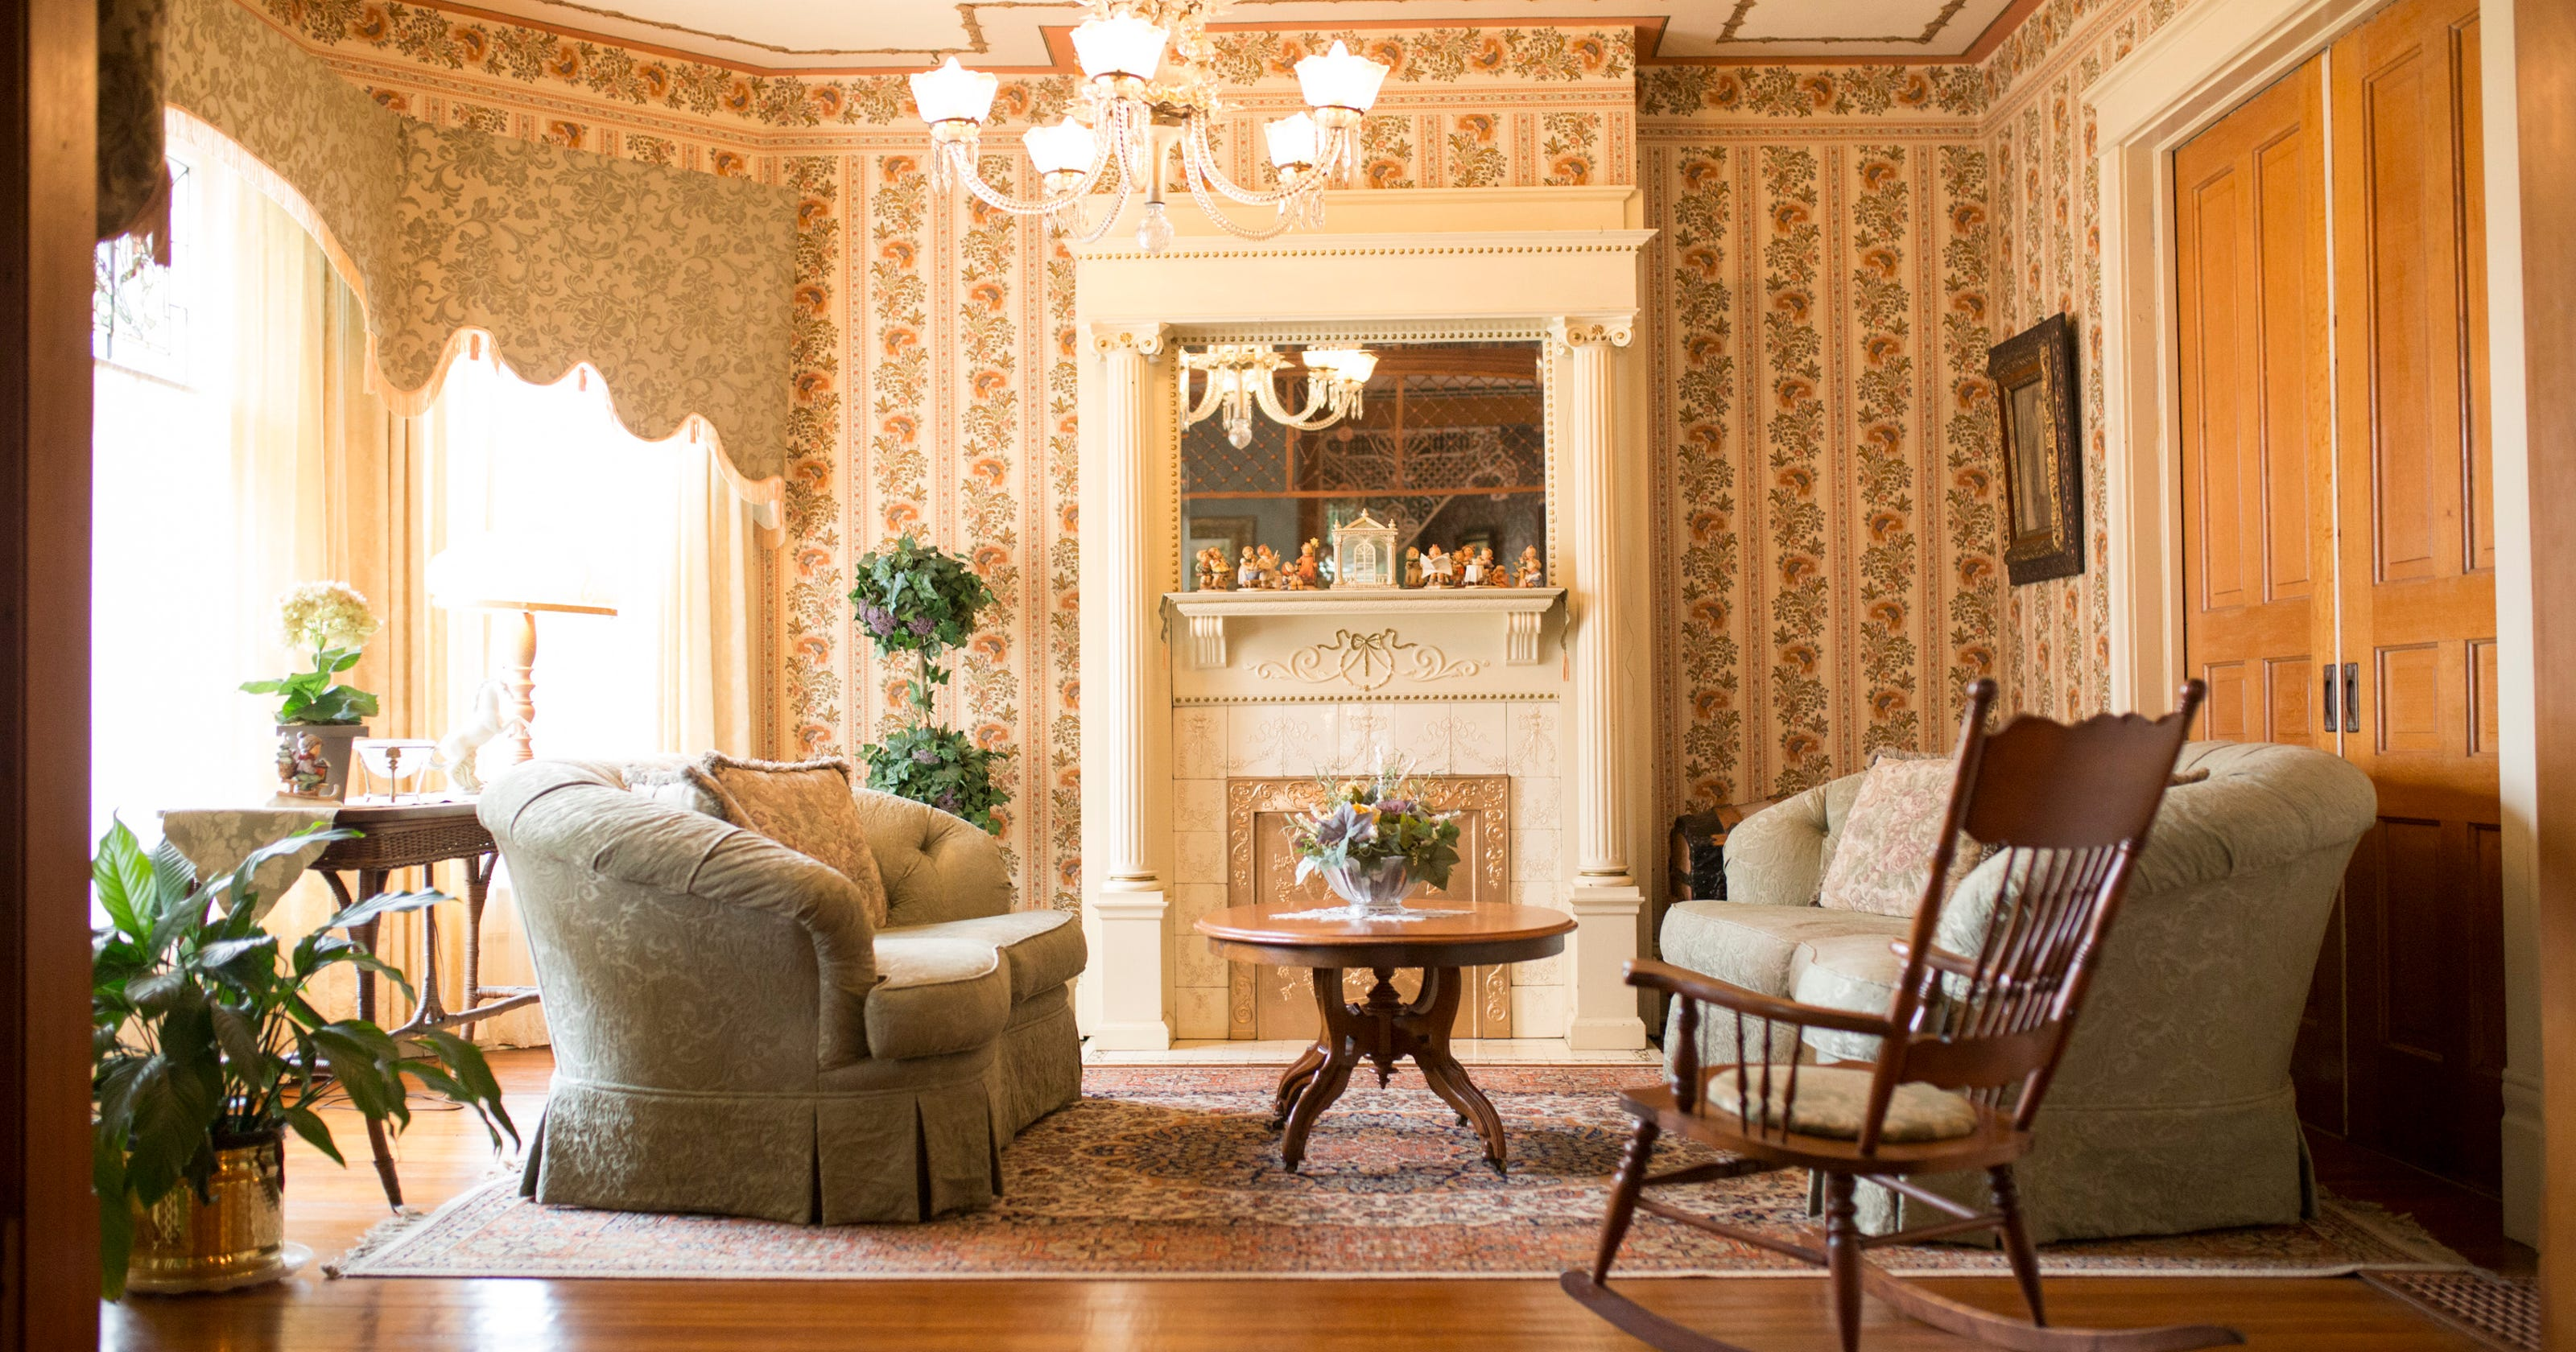 1890s brothel now gladden house bb in indiana home of the week